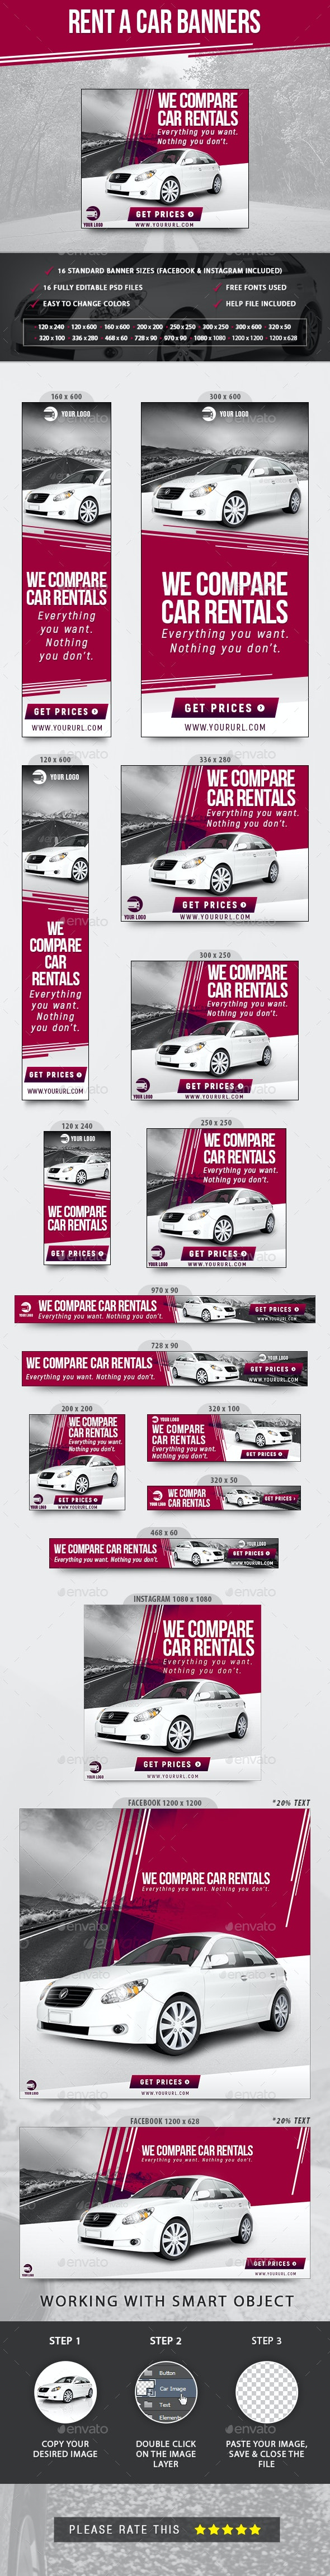 Rent A Car Banners - Banners & Ads Web Elements